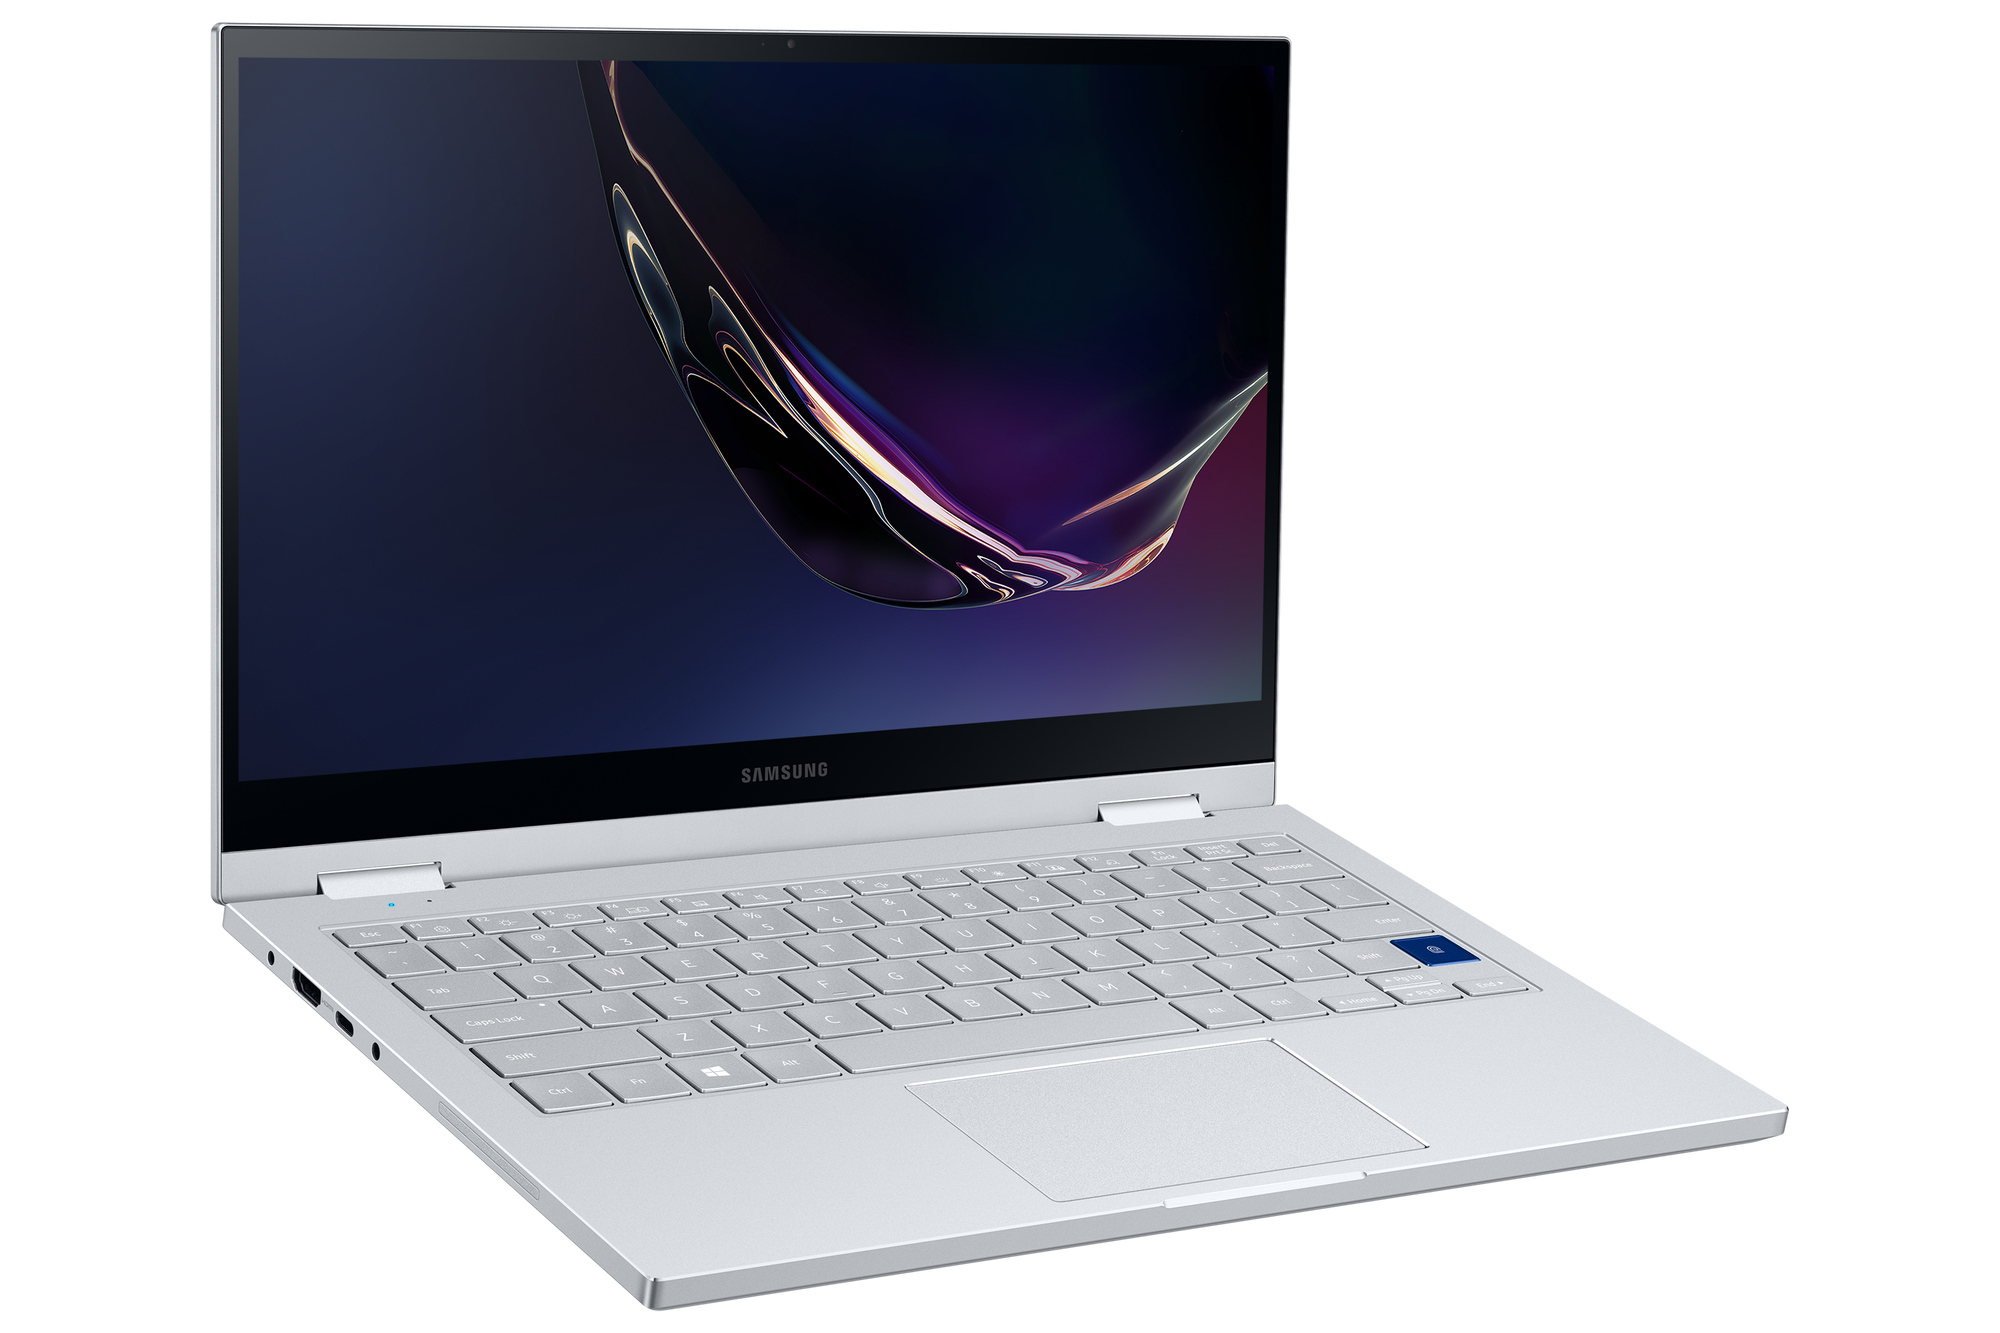 Samsung galaxy book flex2 5G - Cellular Adaptor disappear after update NP730QCJ_011_L-Perspective_Royal-Silver.png